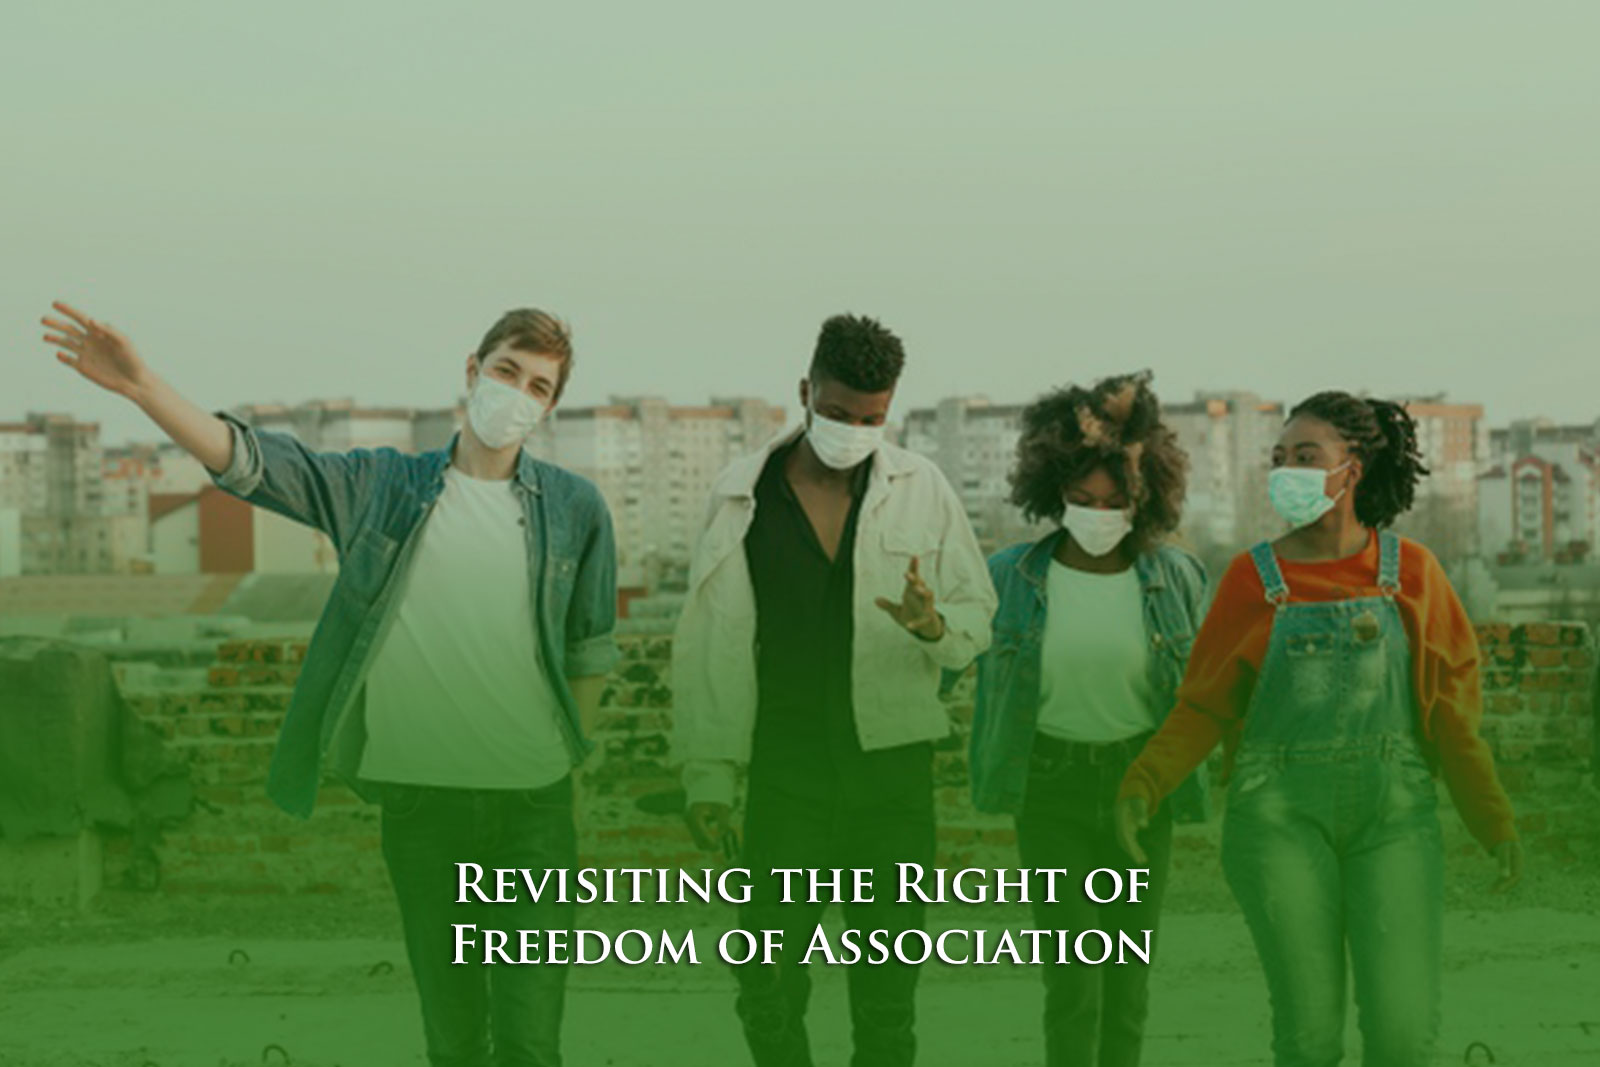 Revisiting the Right of Freedom of Association